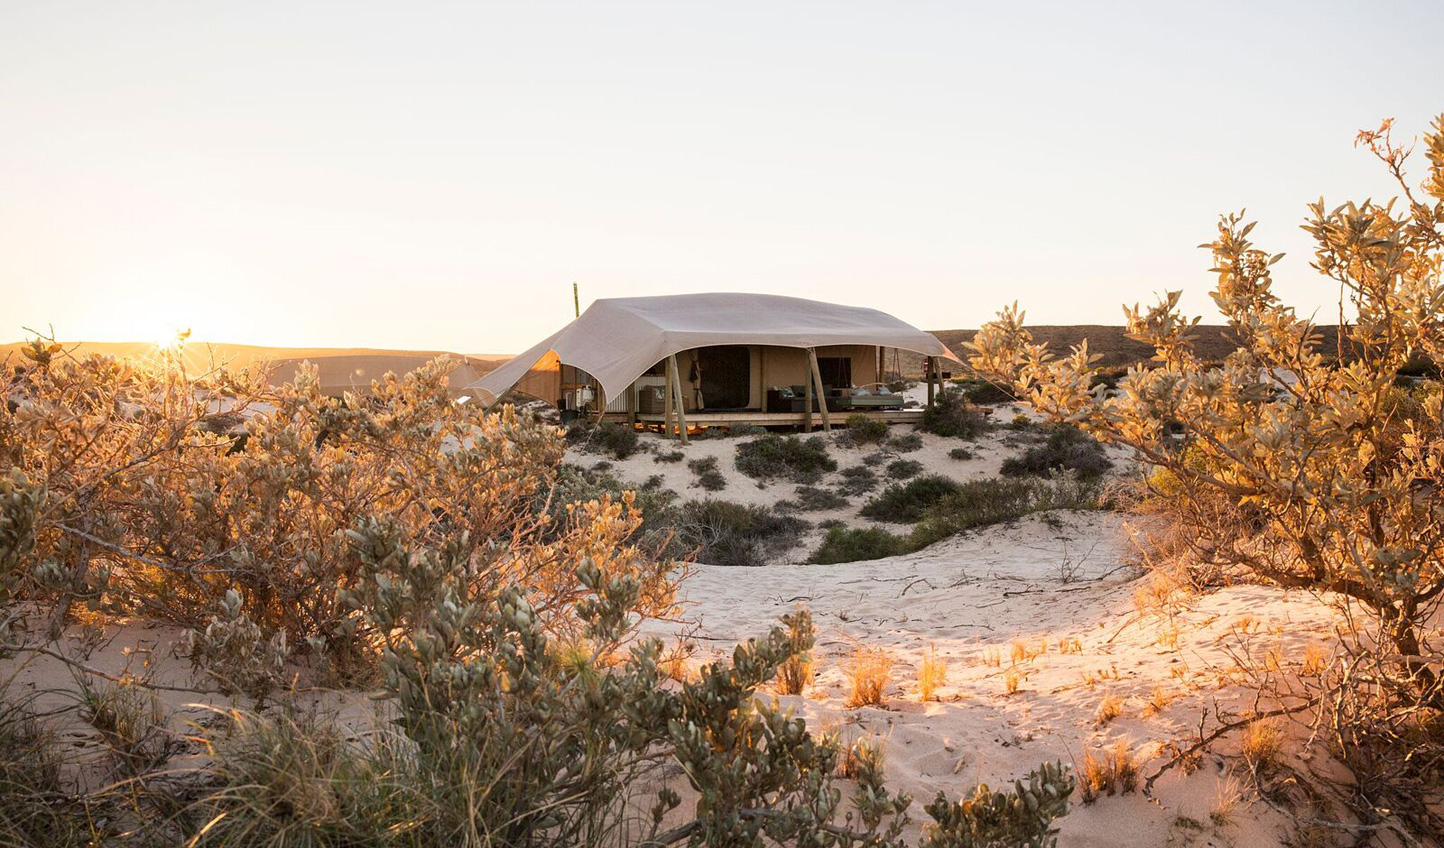 Discover the beauty of Western Australia in eco-luxury at Sal Salis